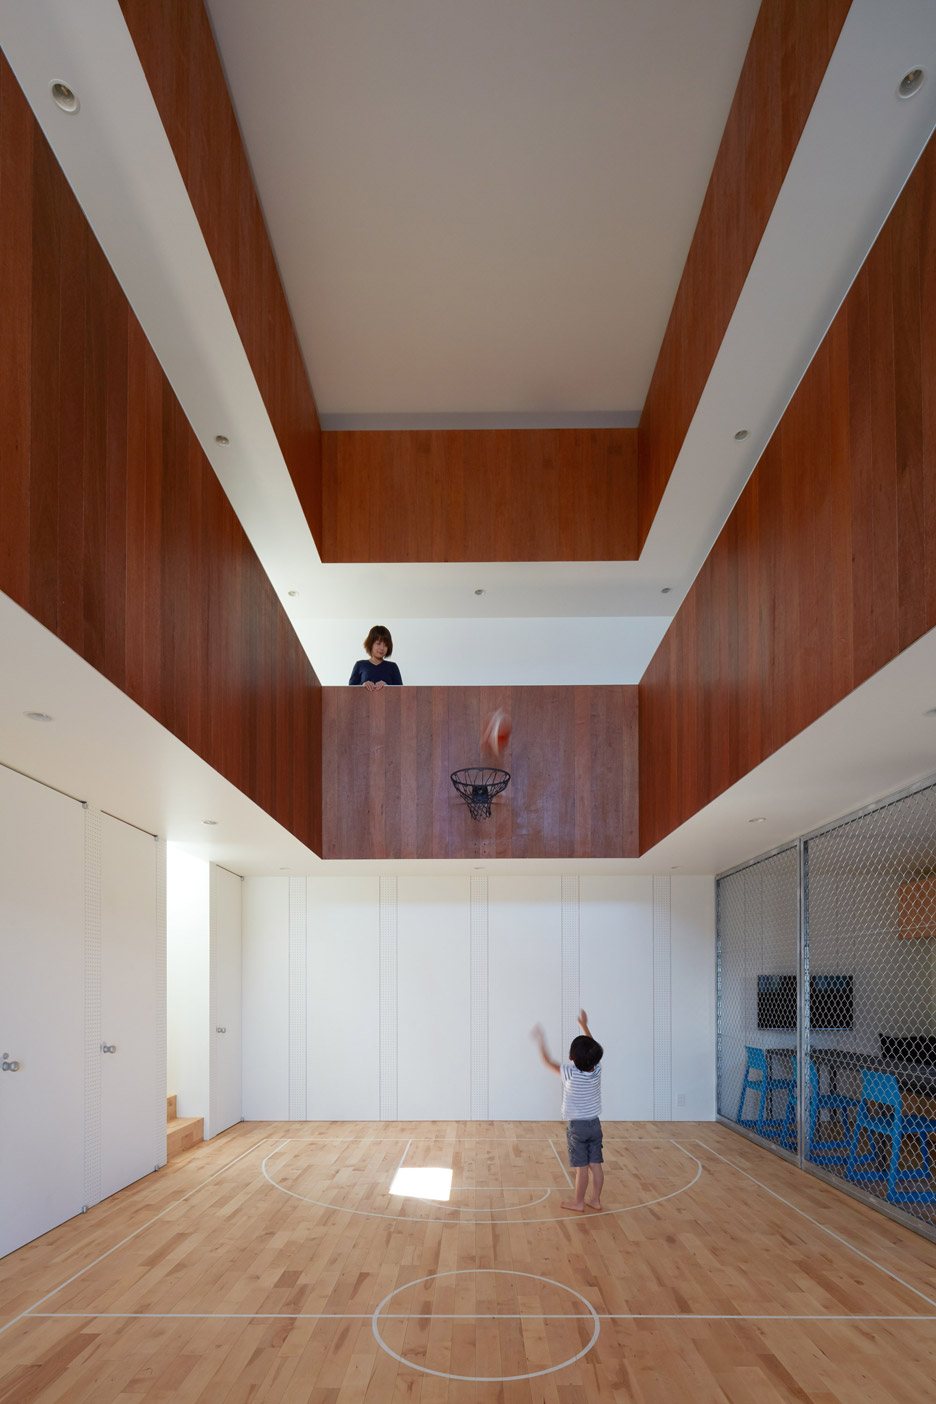 A house in japan has an indoor basketball court your no for Basketball court inside house